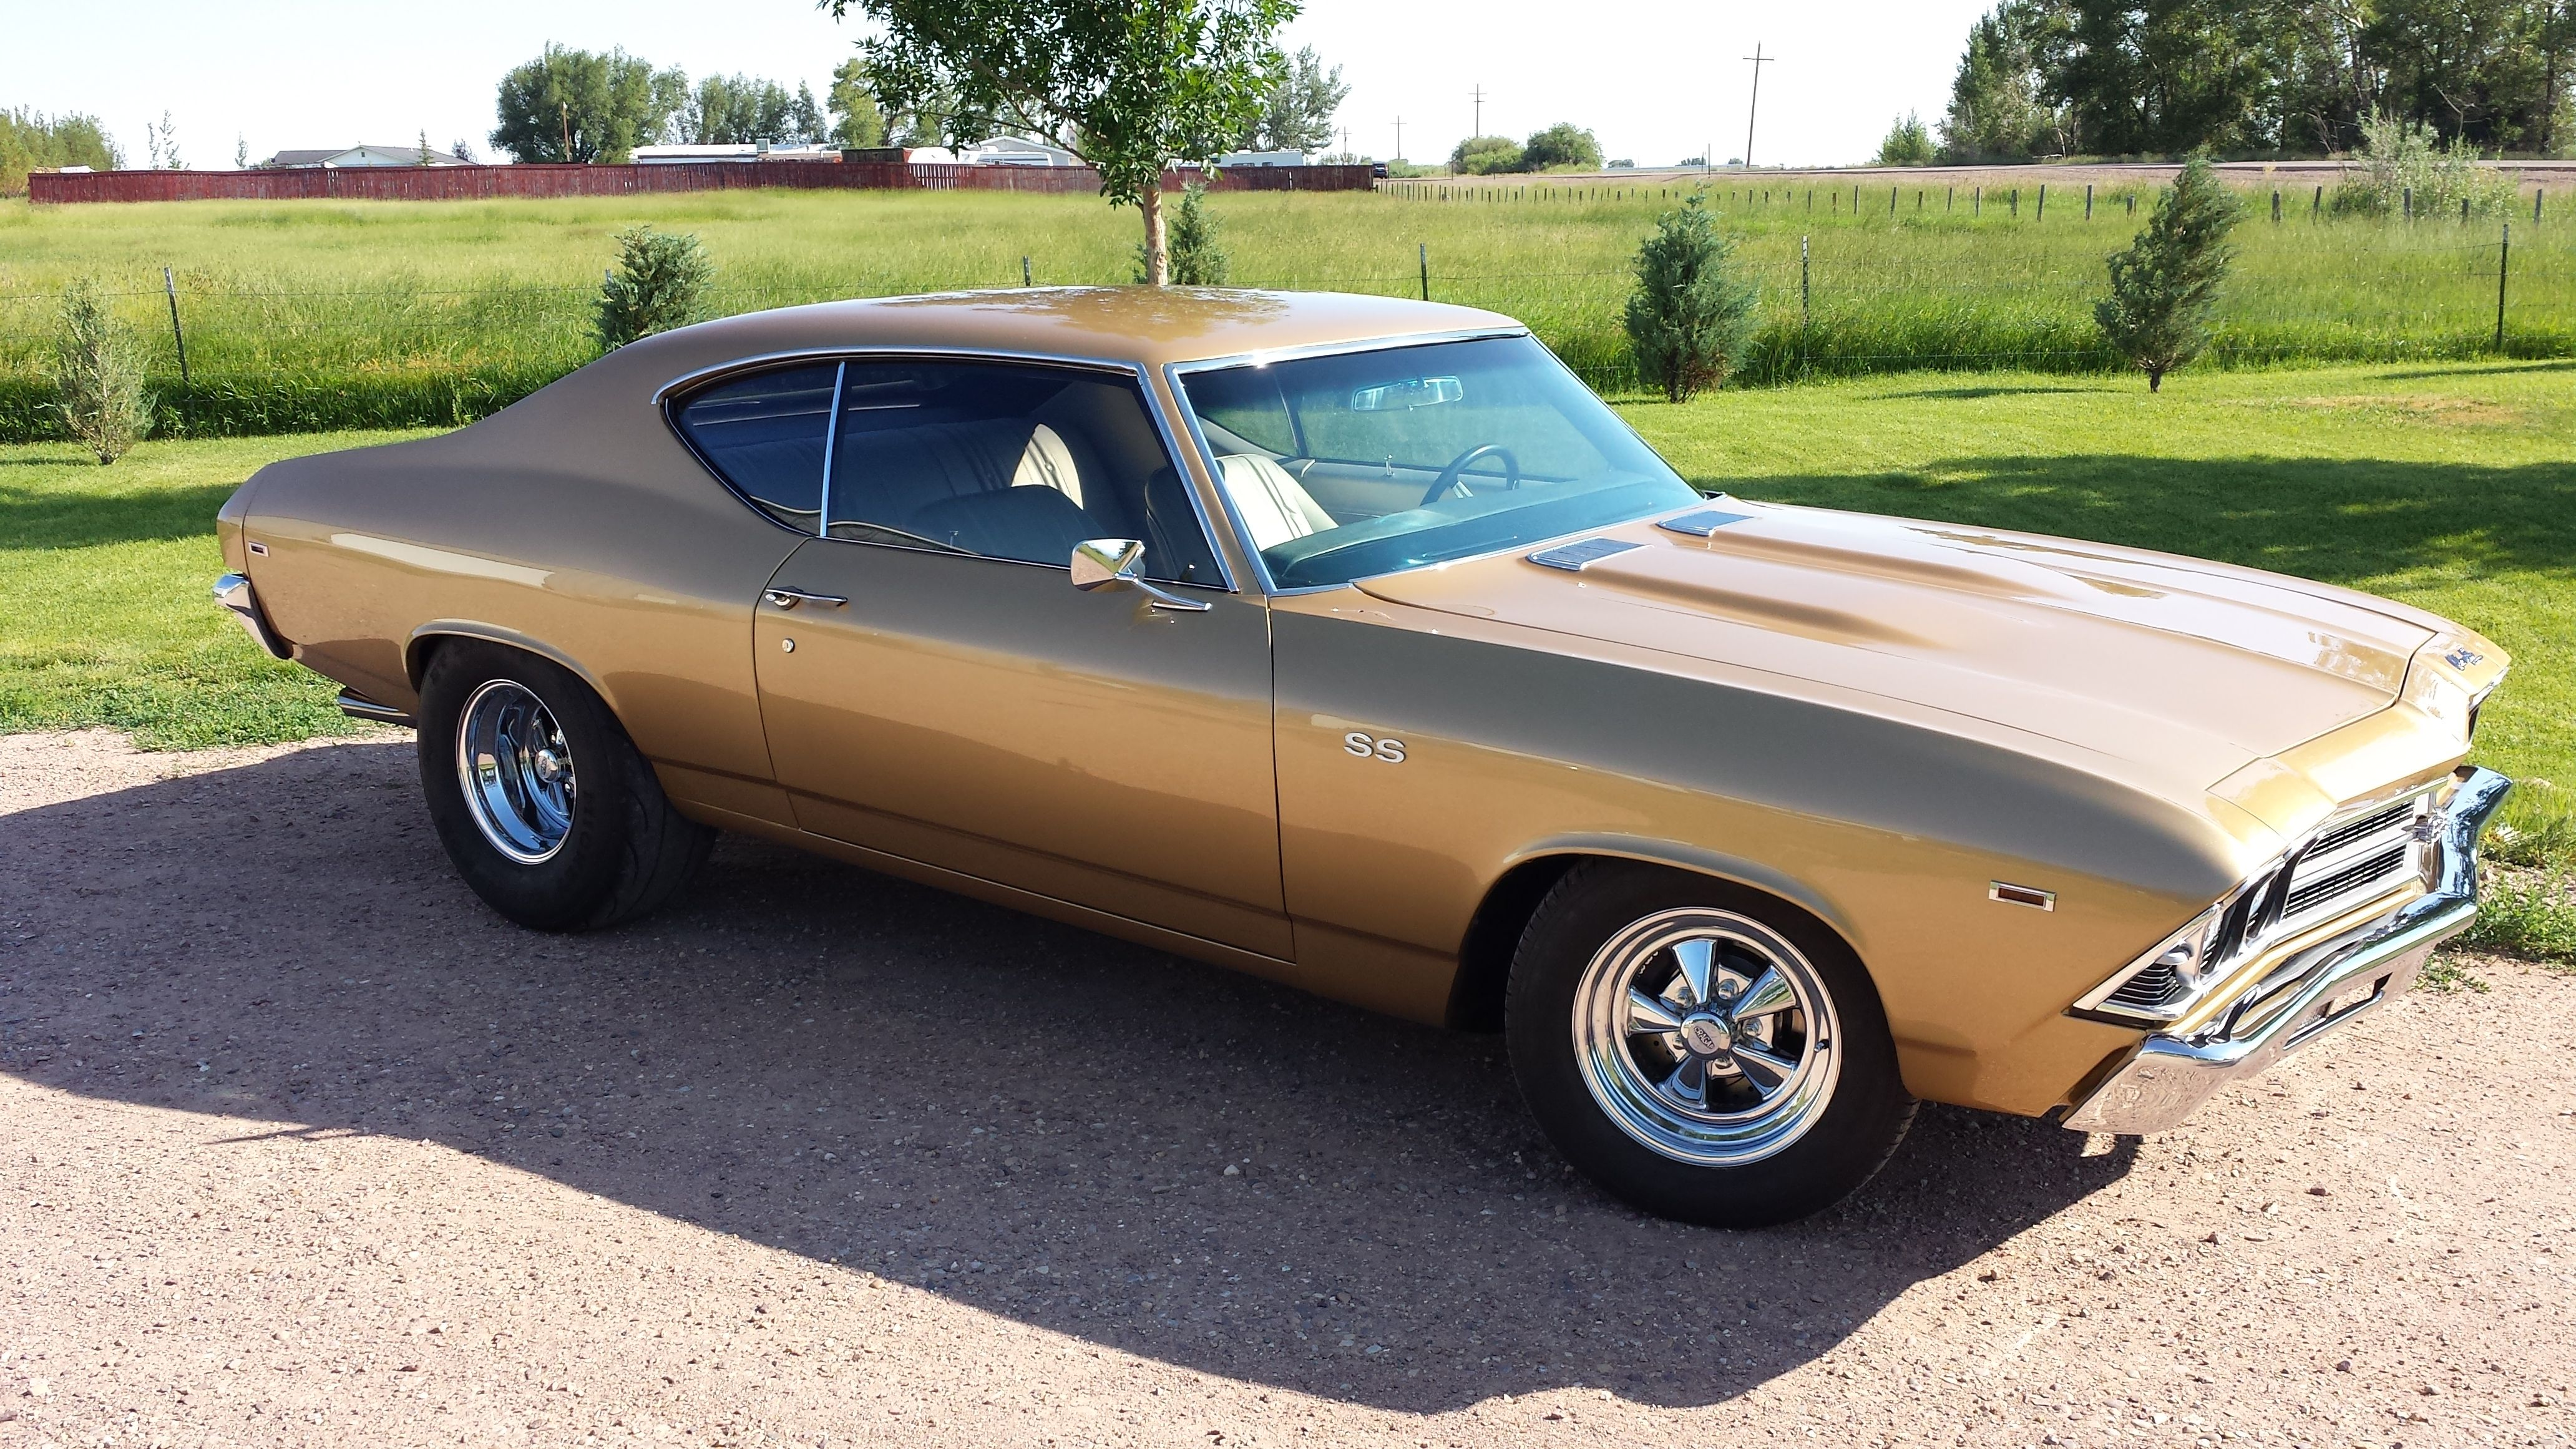 readers ride casey burns killer 1969 chevelle casey found his 69 chevelle in disrepair in an old w s garage after seeing an ad on craigslist i bought the car in a rusted heap in casper wyoming in